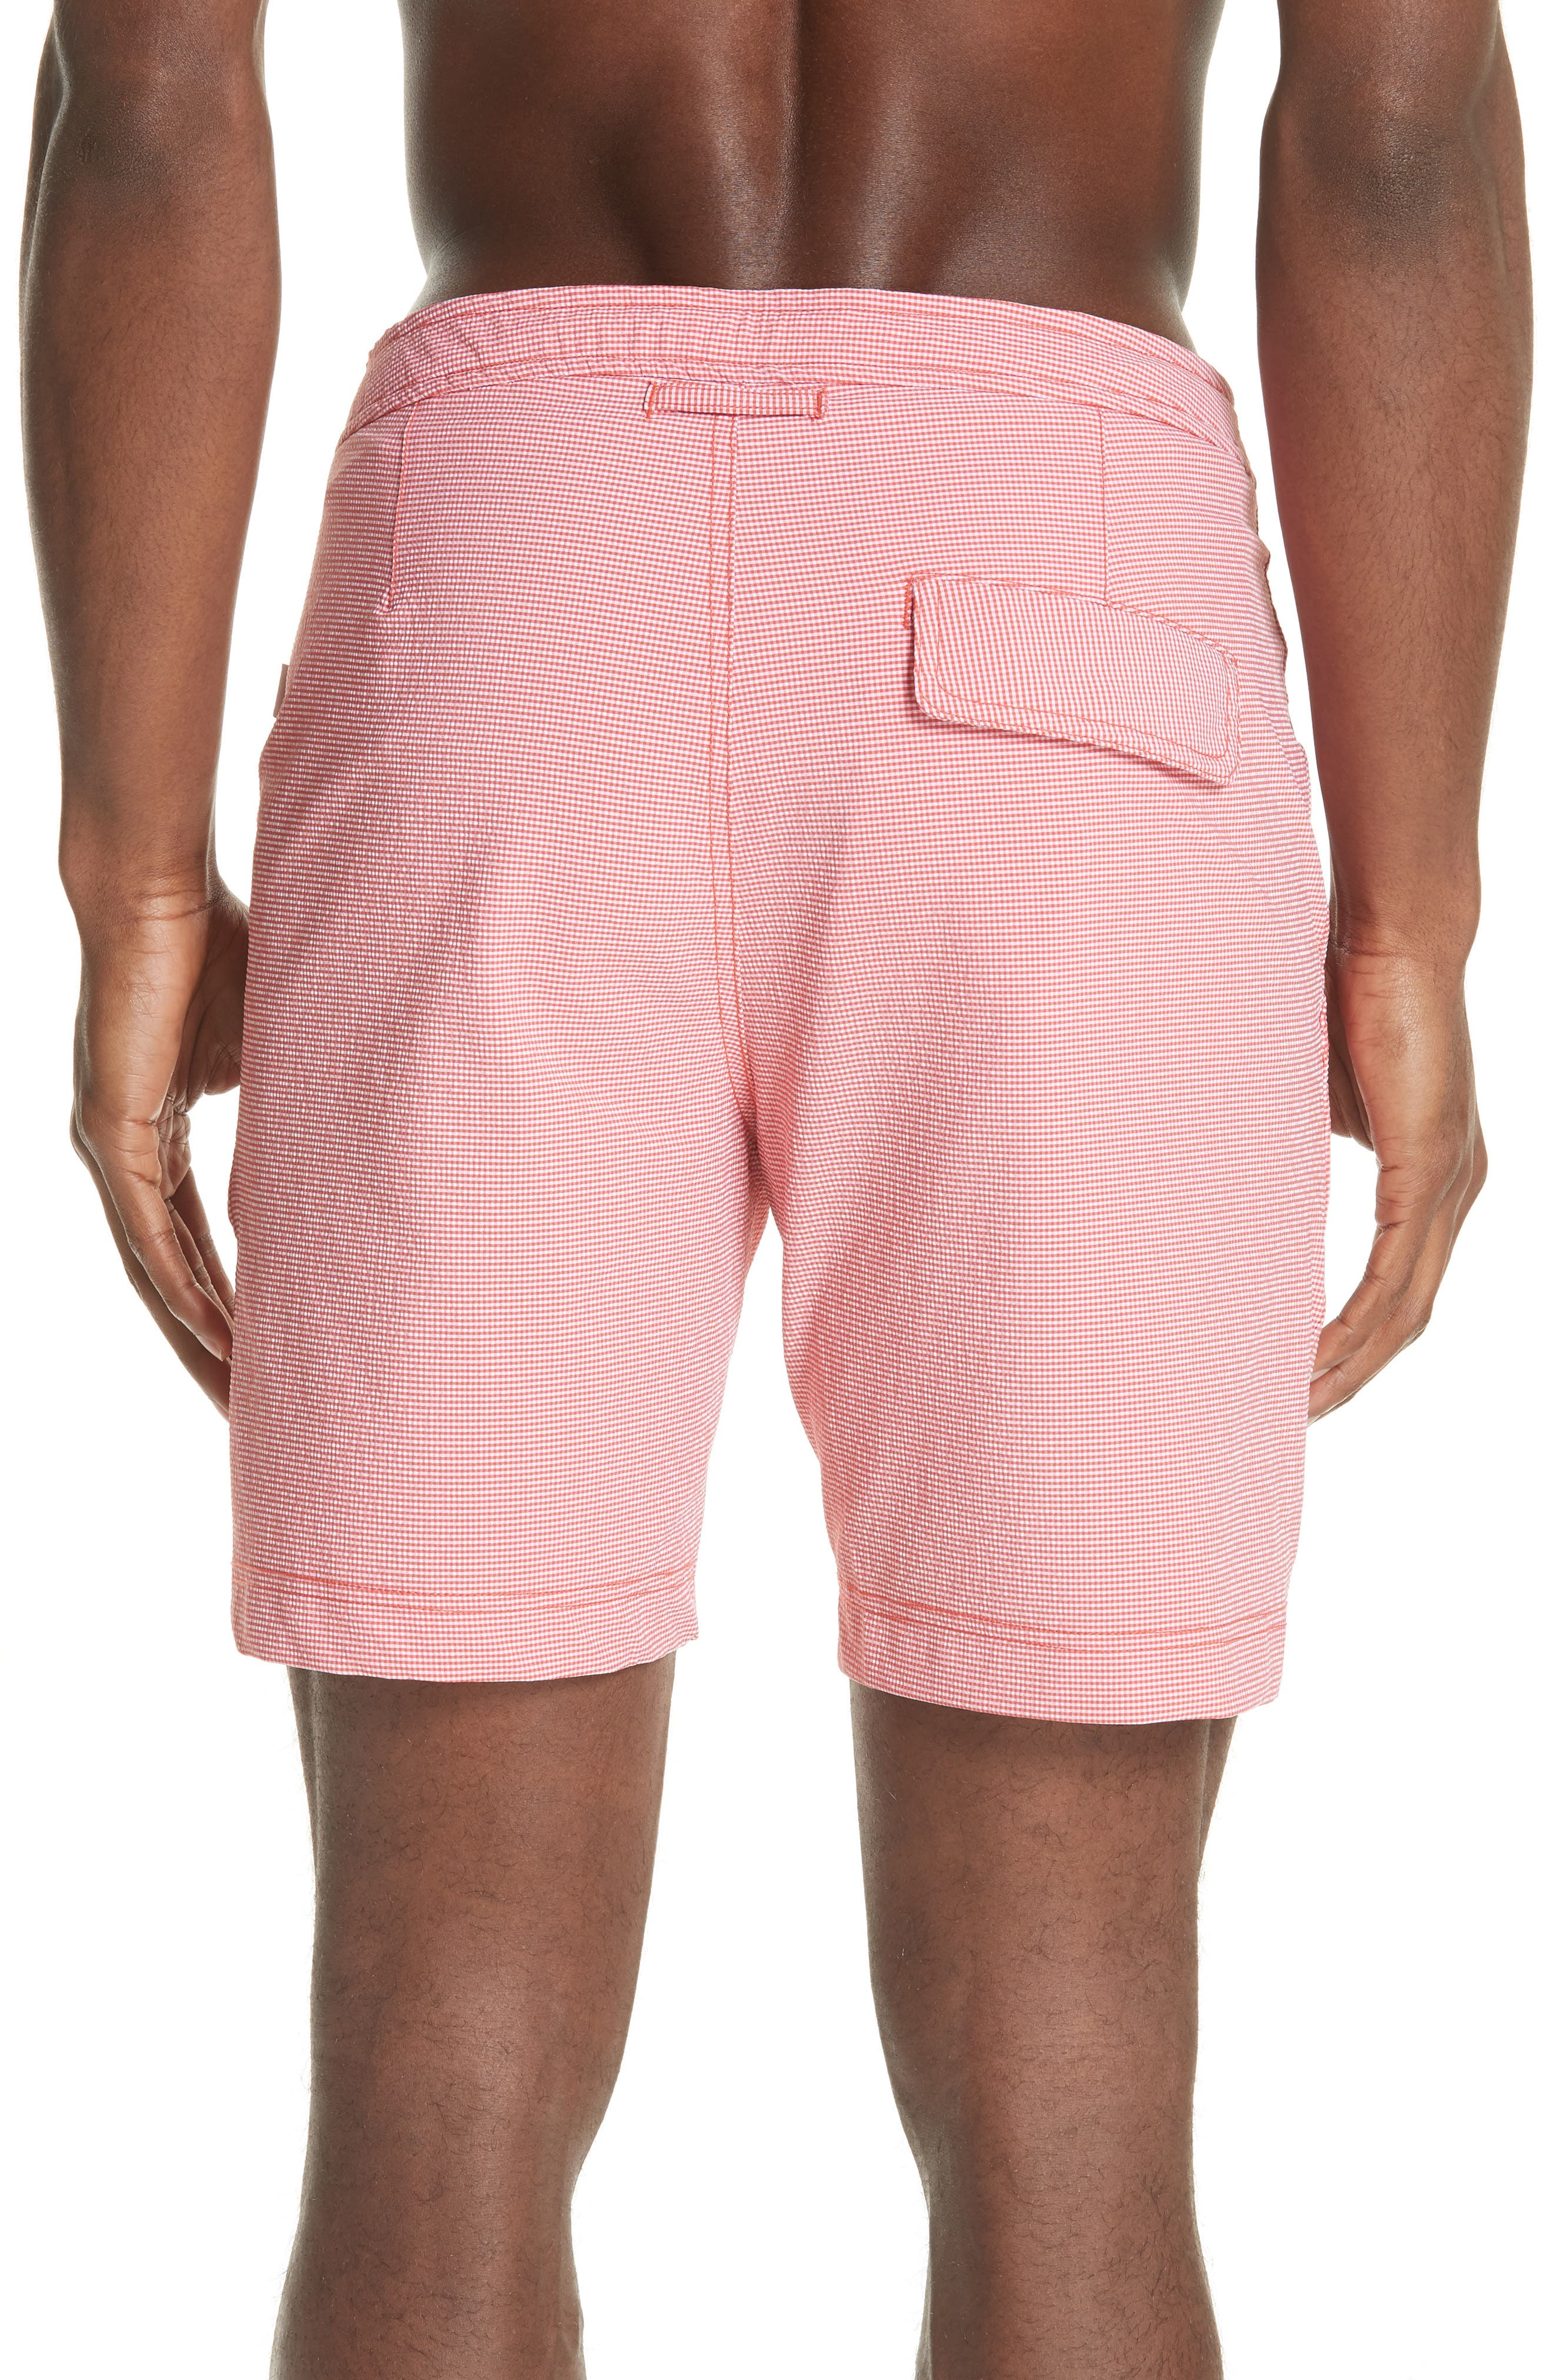 Calder Spanish Gingham Swim Trunks,                             Alternate thumbnail 2, color,                             GRENADINE/ WHITE